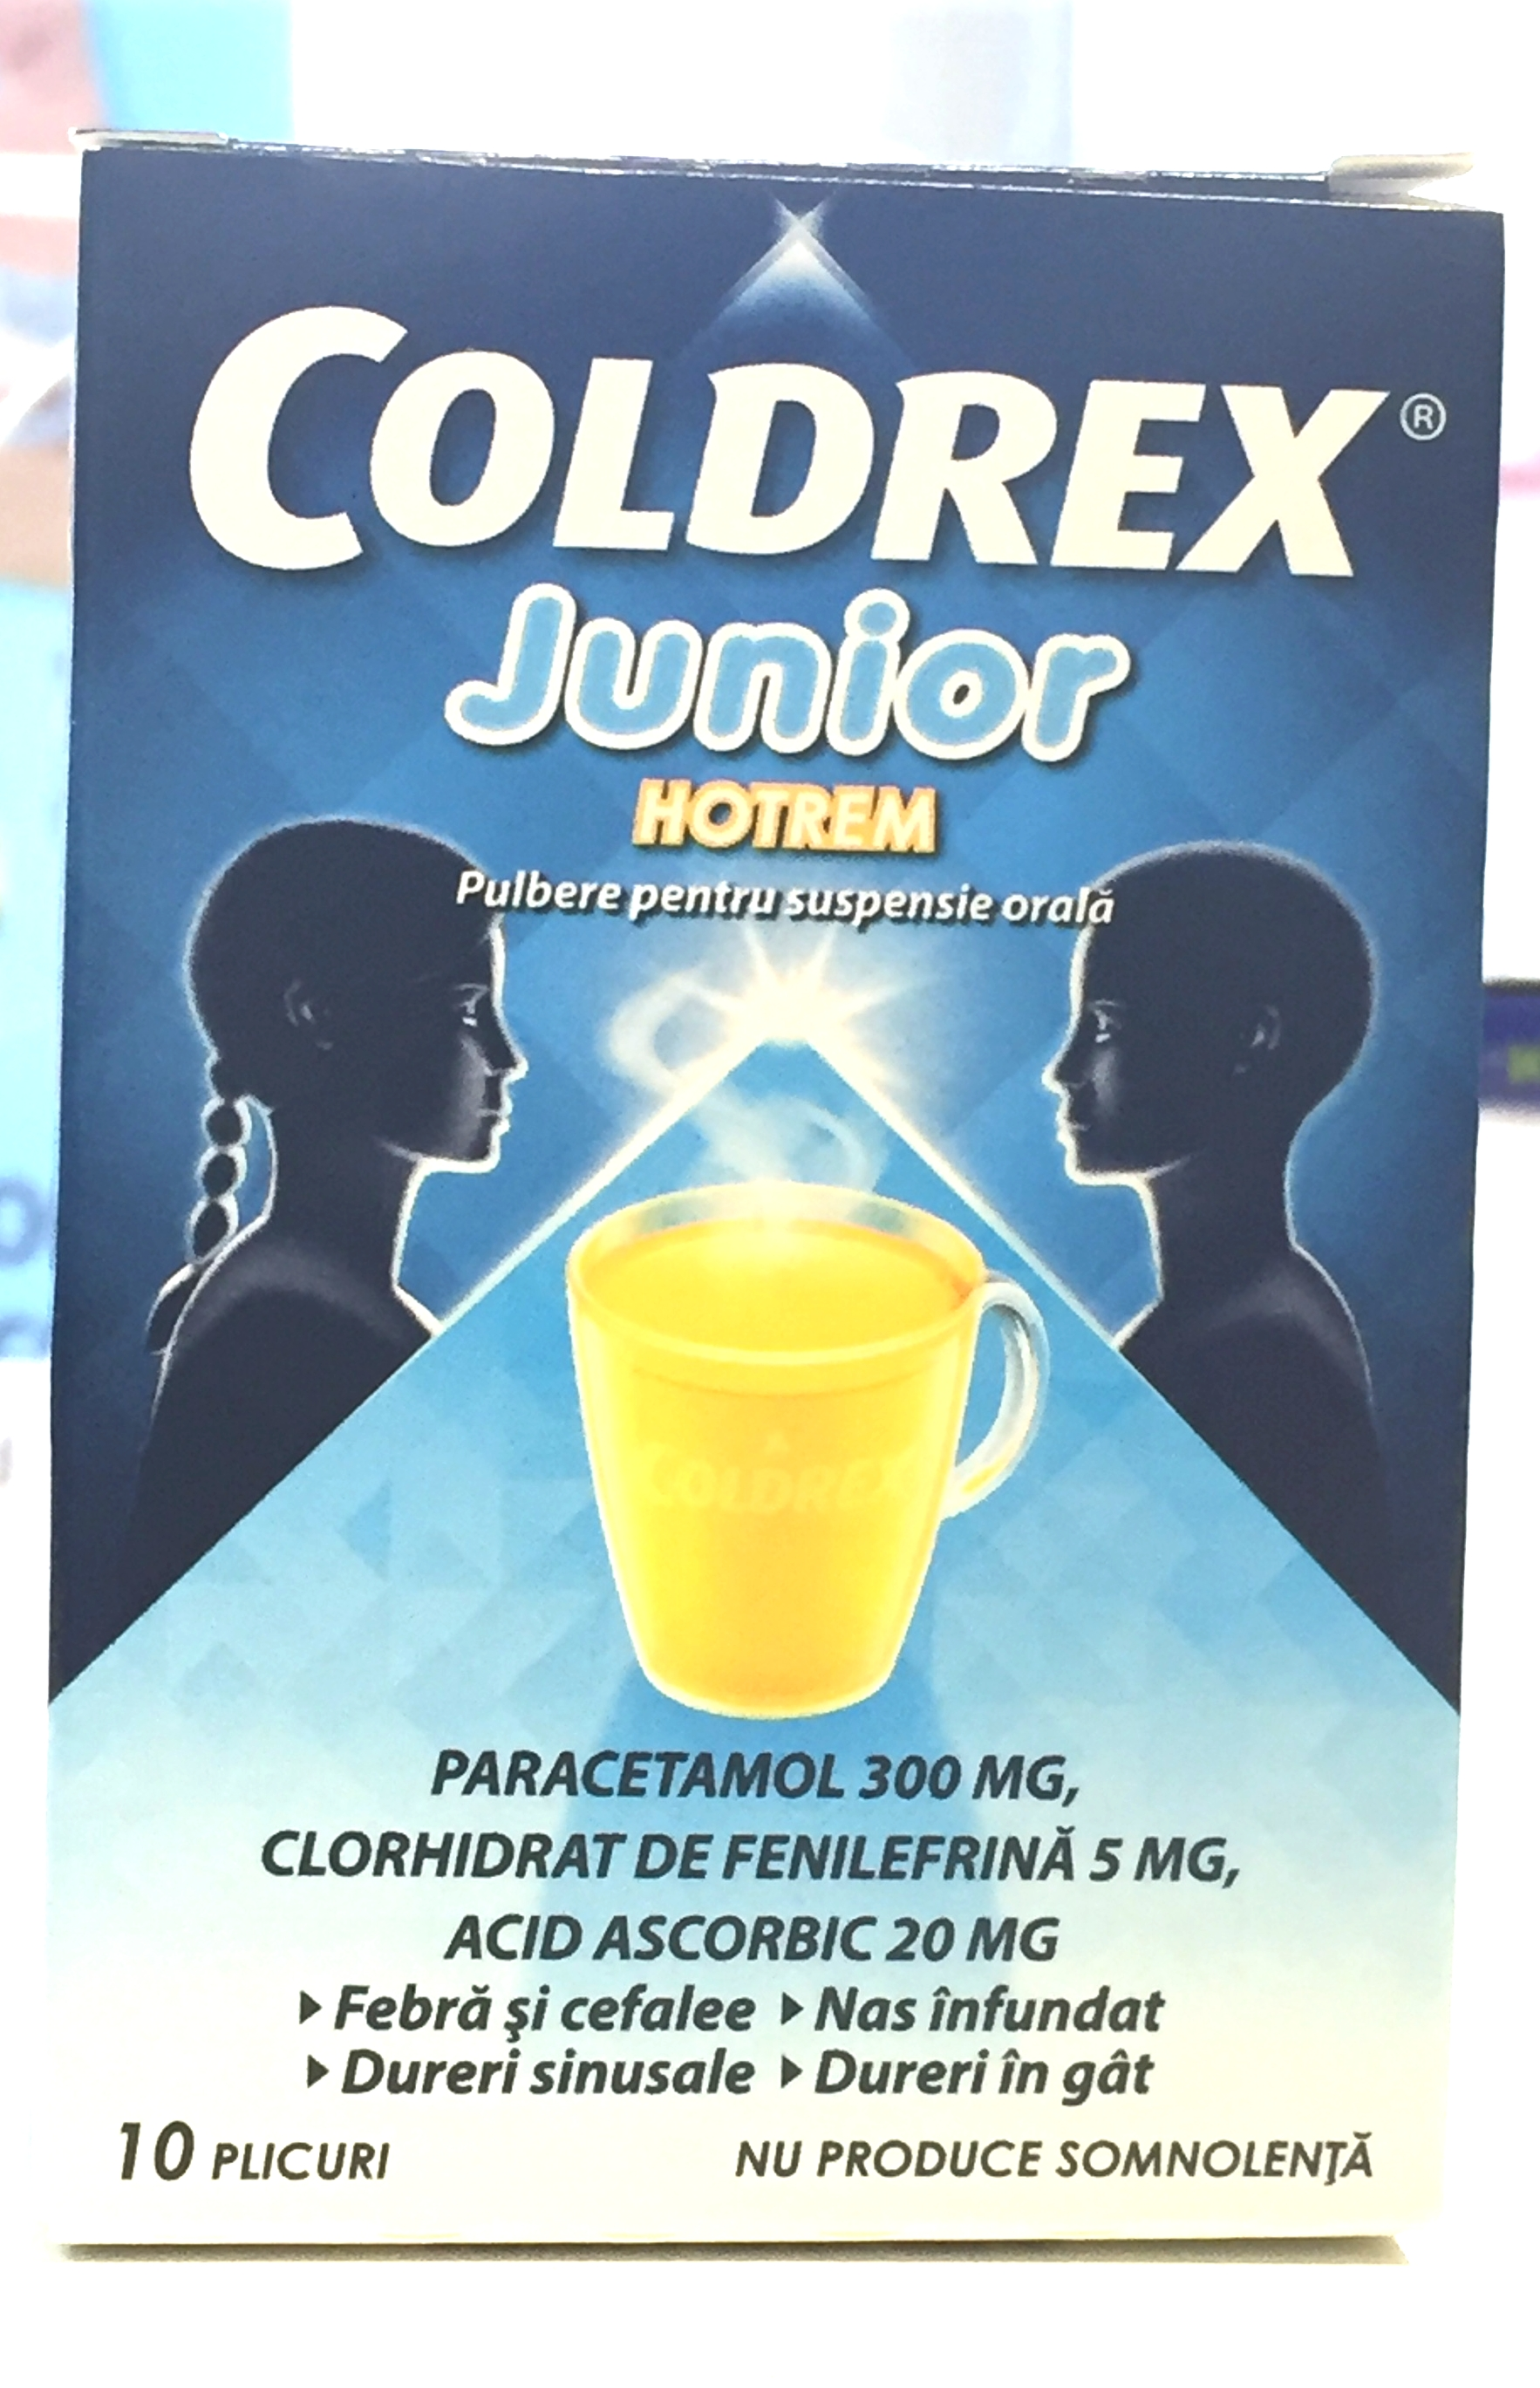 Coldrex Junior Hotrem